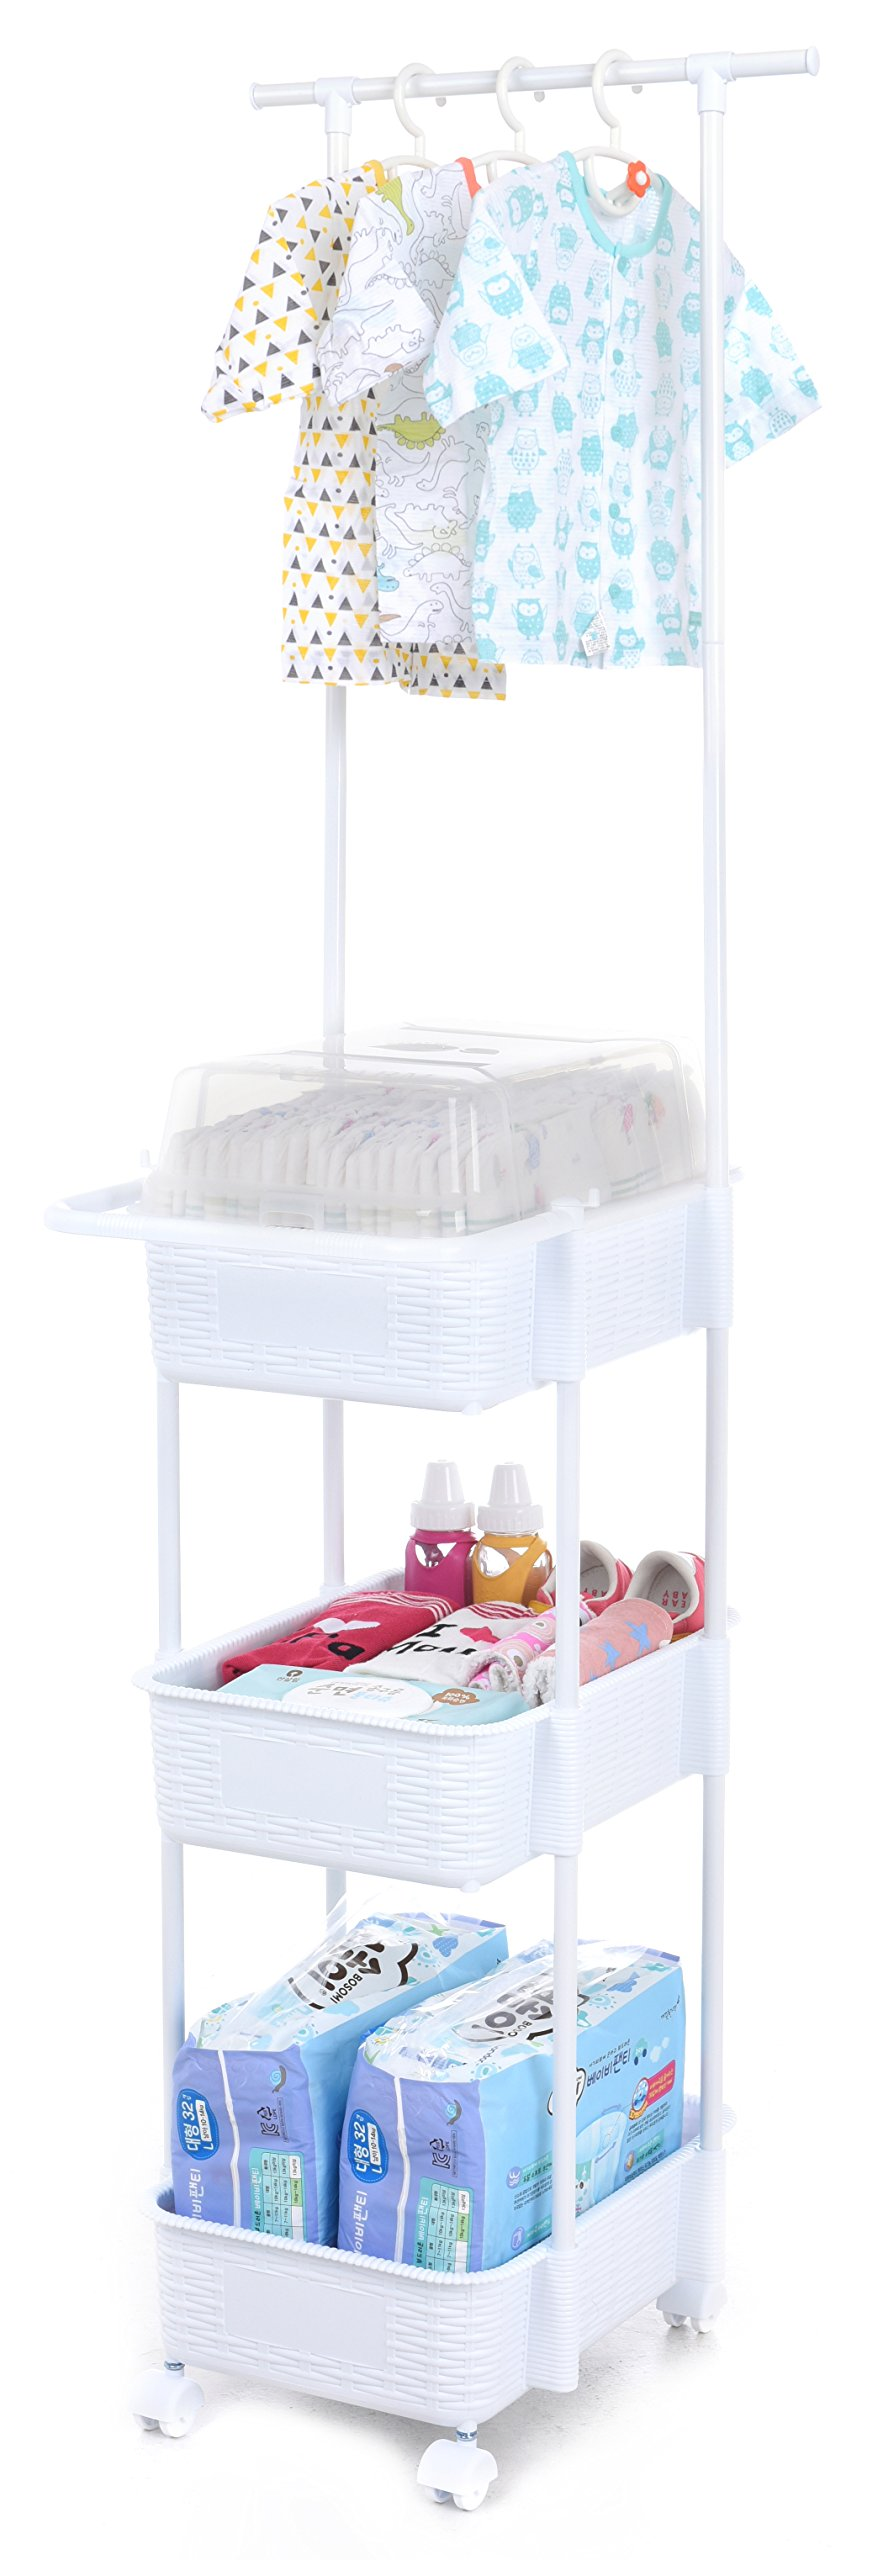 Tenby Living Diaper Caddy & Nursery Organizer with Clothes Rack & Hangers, White